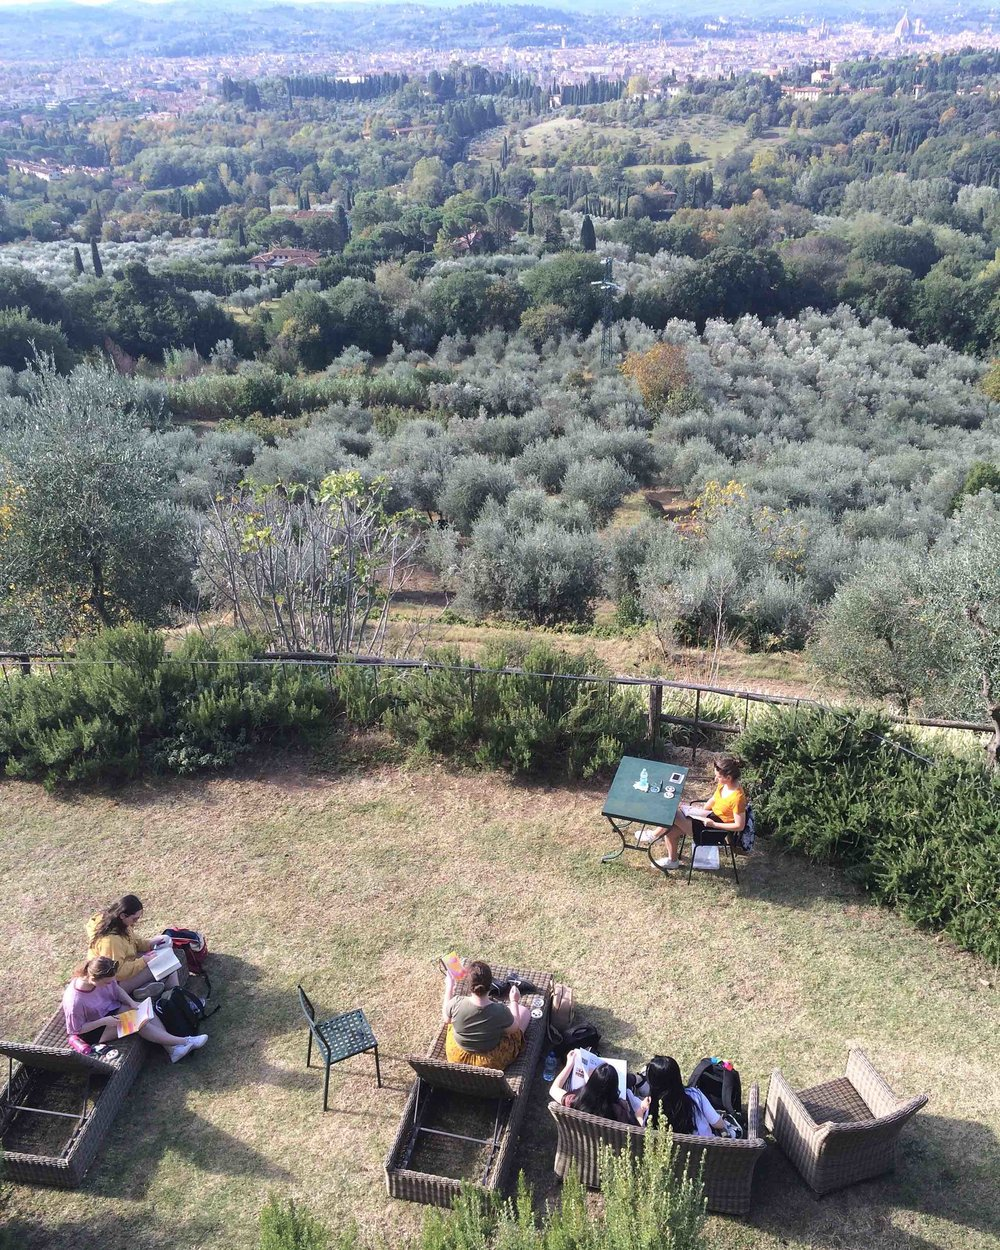 Plein Air painting and drawing at Pensione Bencista overlooking Florence